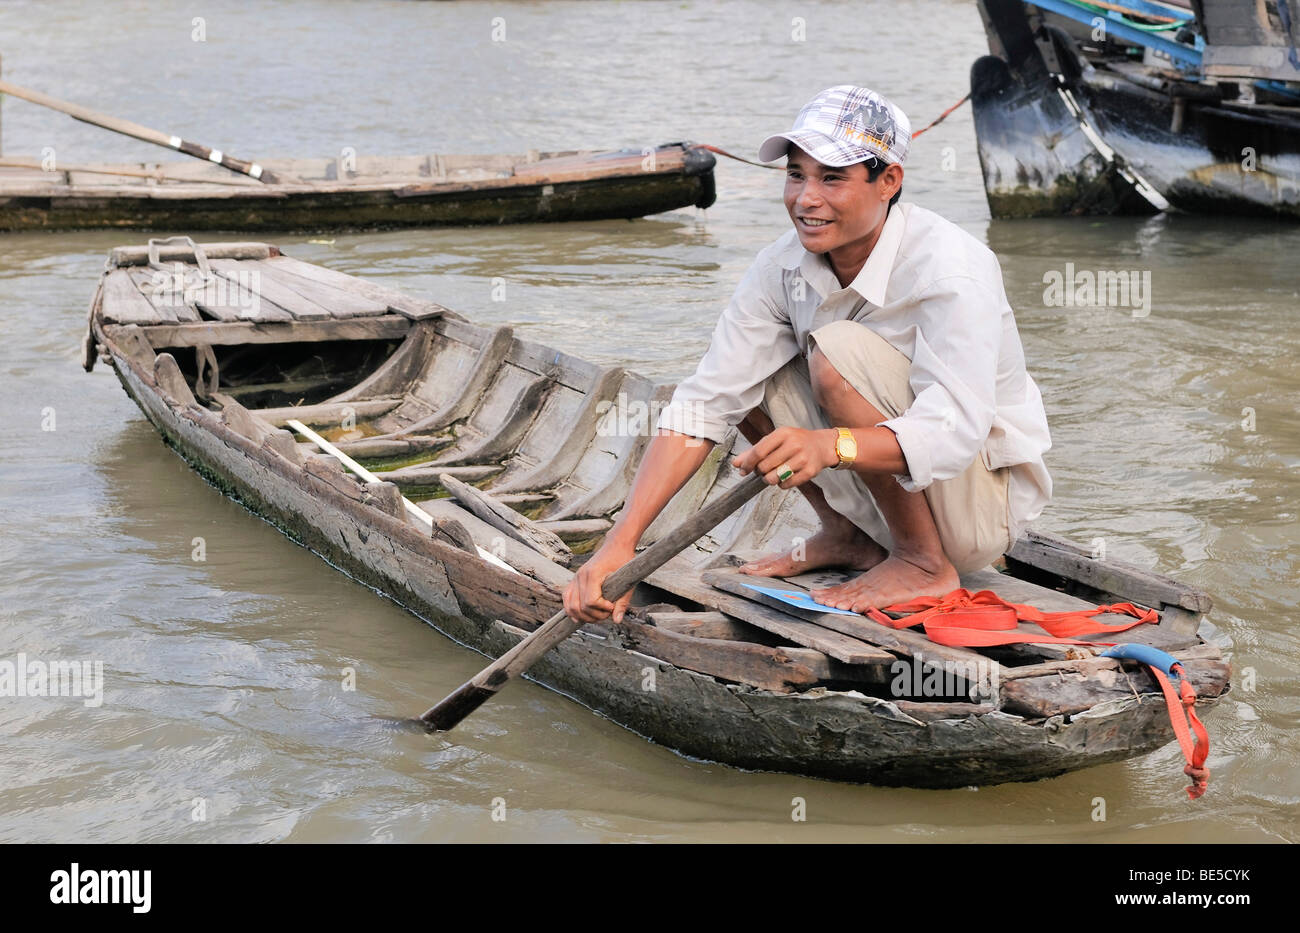 Man with a small rowboat, Mekong Delta, Vietnam, Asia - Stock Image